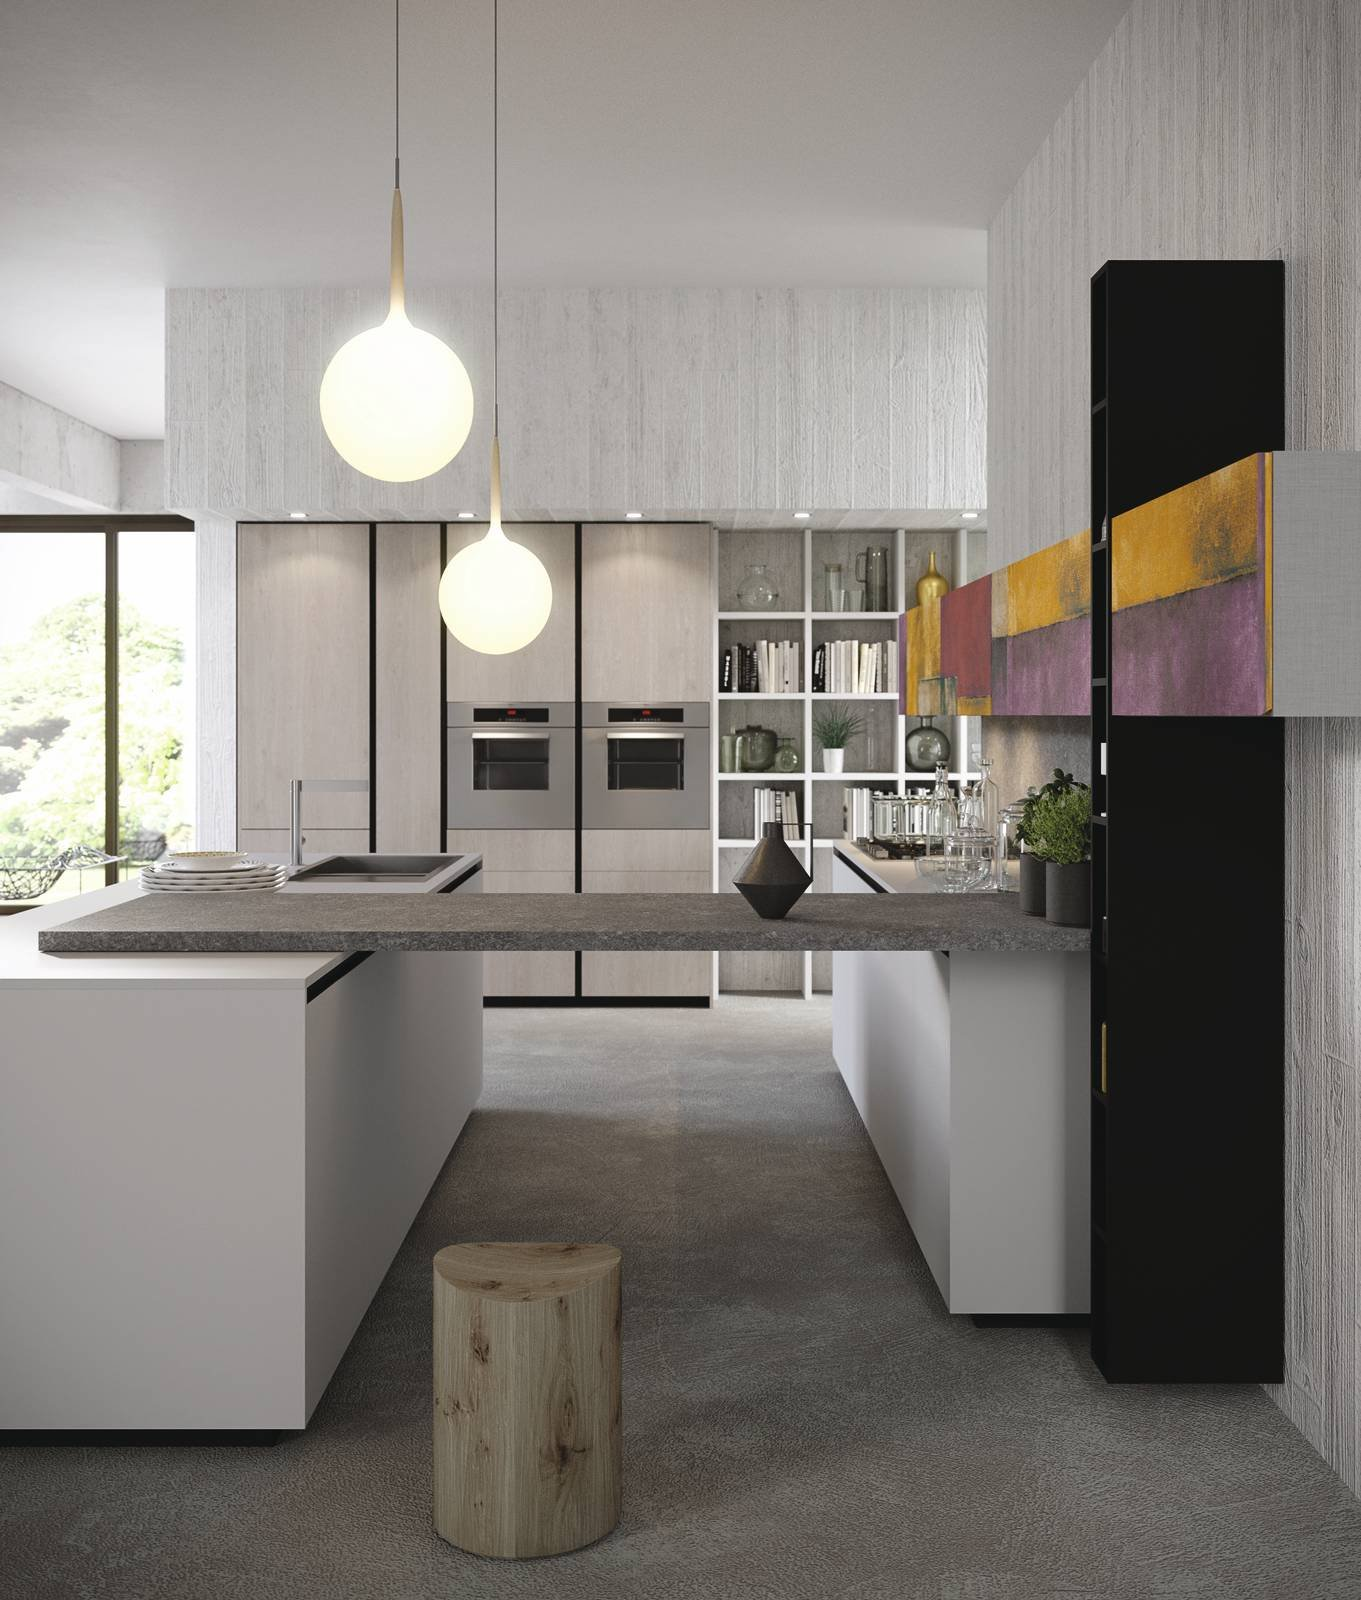 0756 16 v04 set 05 cose di casa for Cucine moderne 3x3